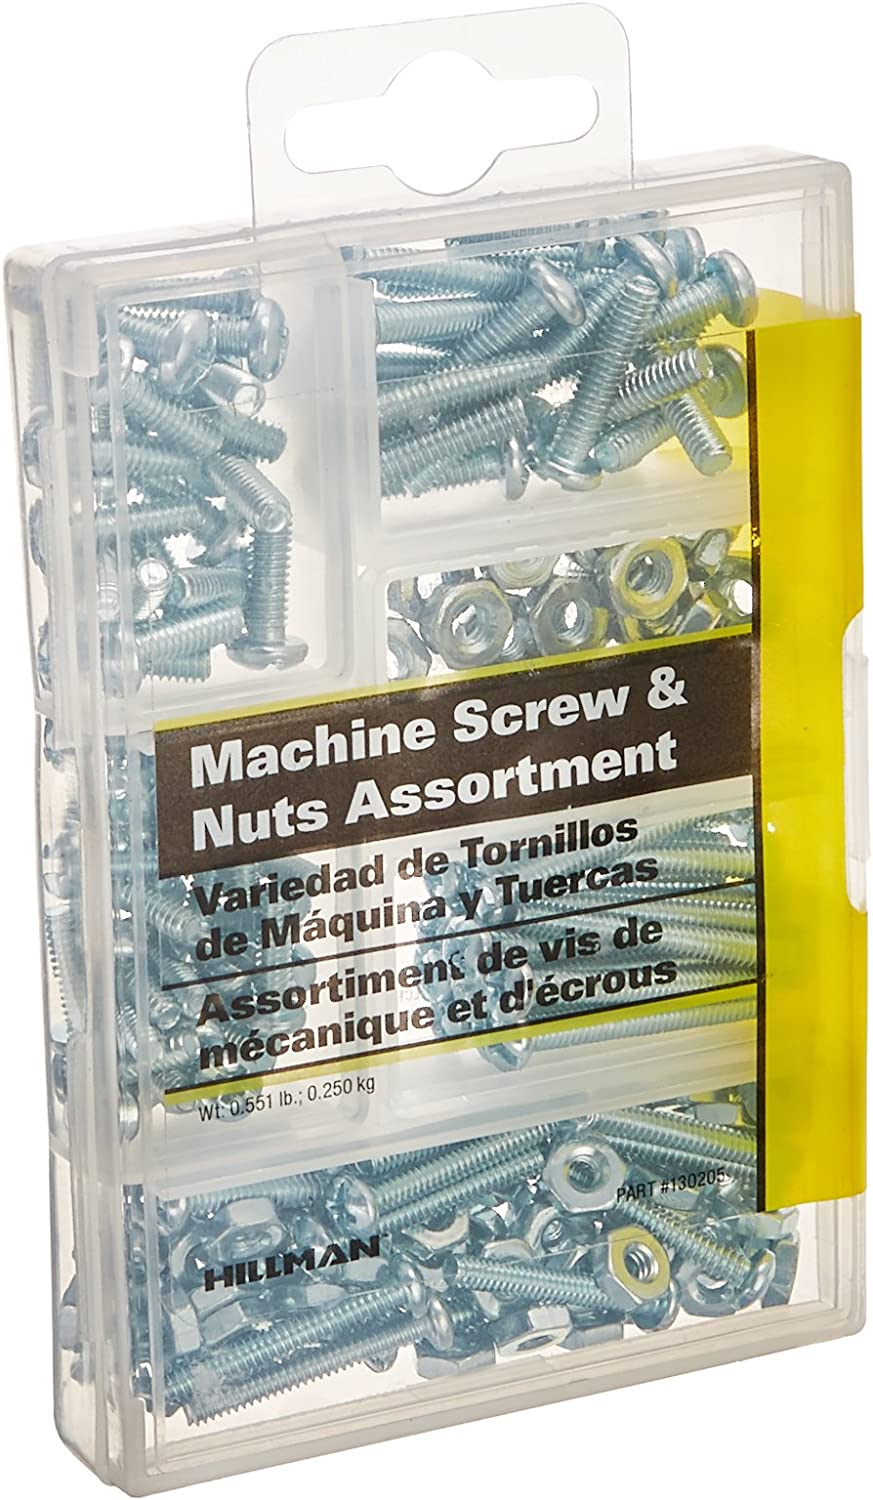 2 Packs of 195 The Hillman Group 591518 Small Machine Screws with Nuts Assortment,